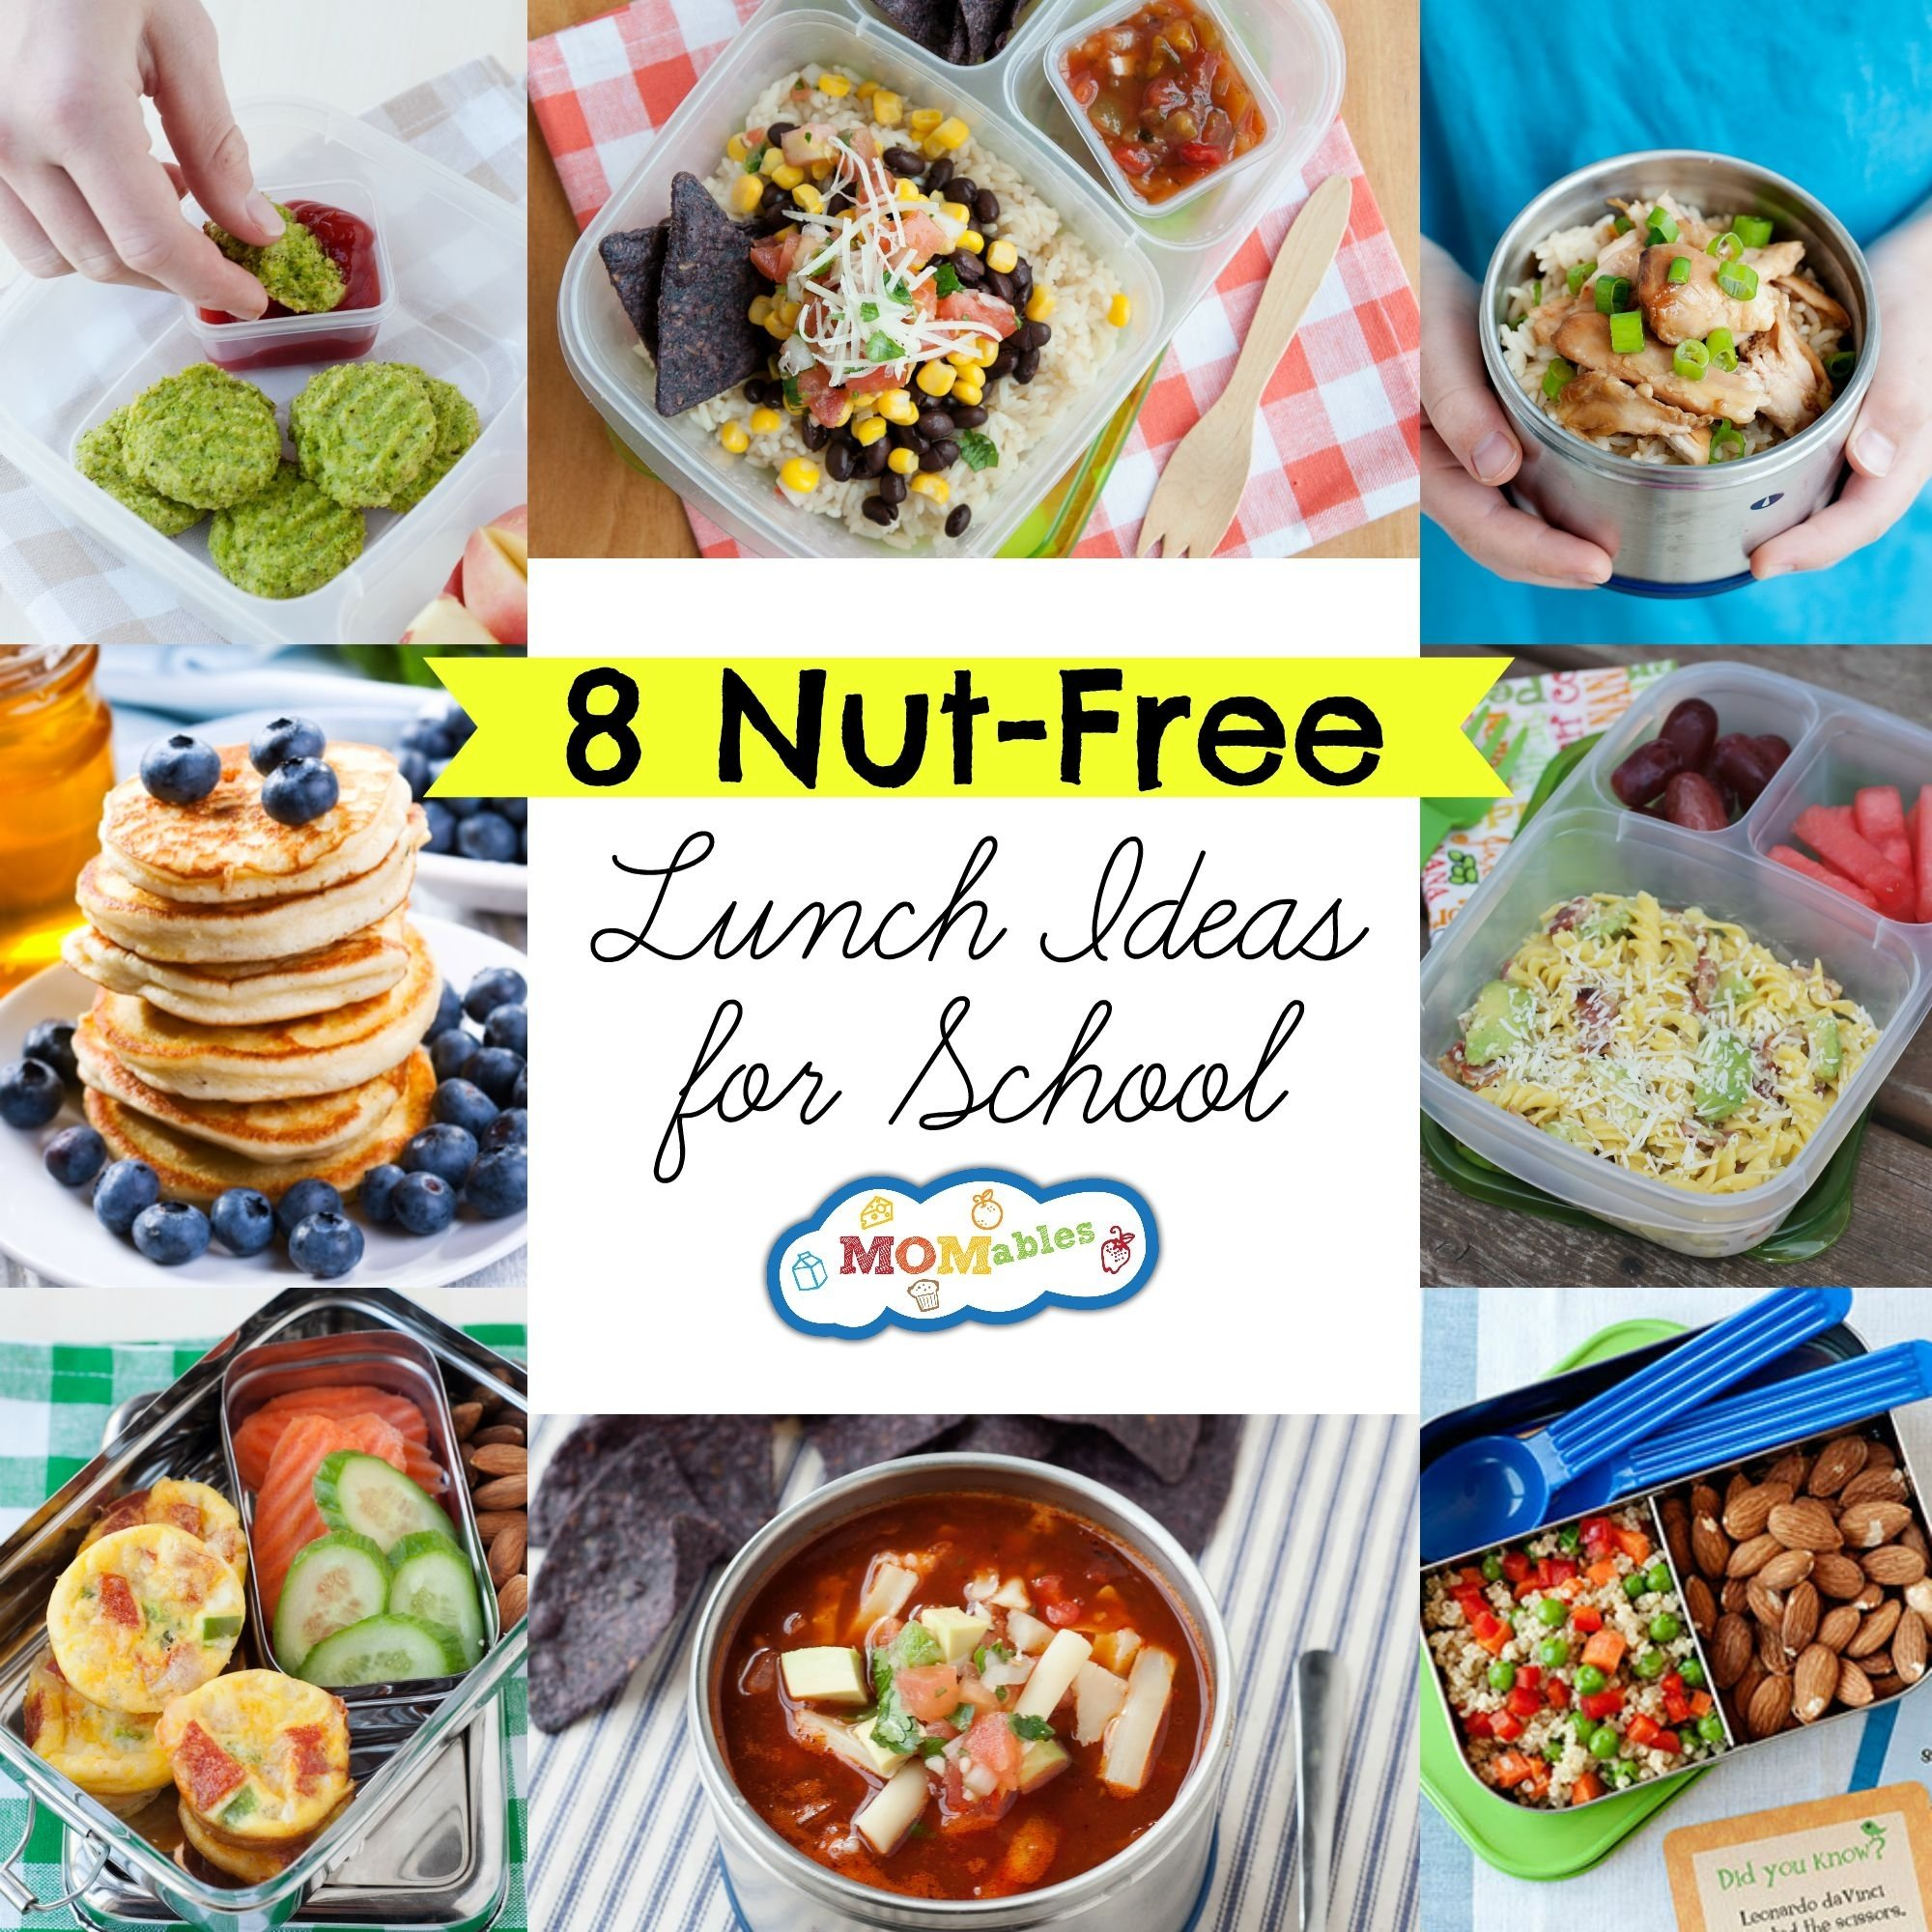 10 Fantastic School Snack Ideas For Kids 8 nut free lunch ideas for school momables 2020